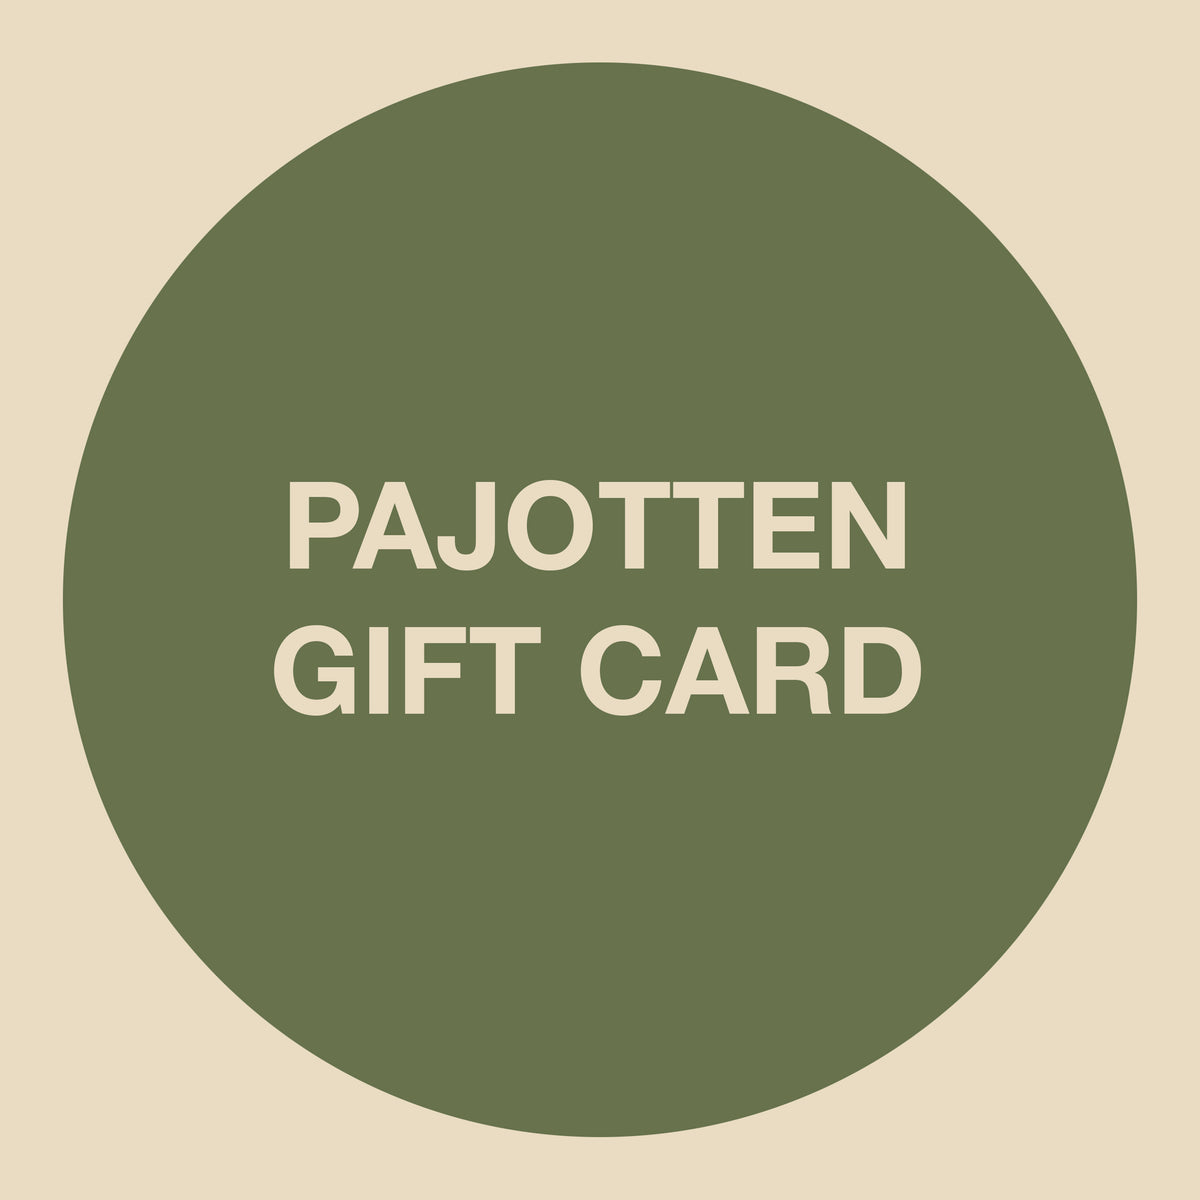 an image of a Pajotten gift card